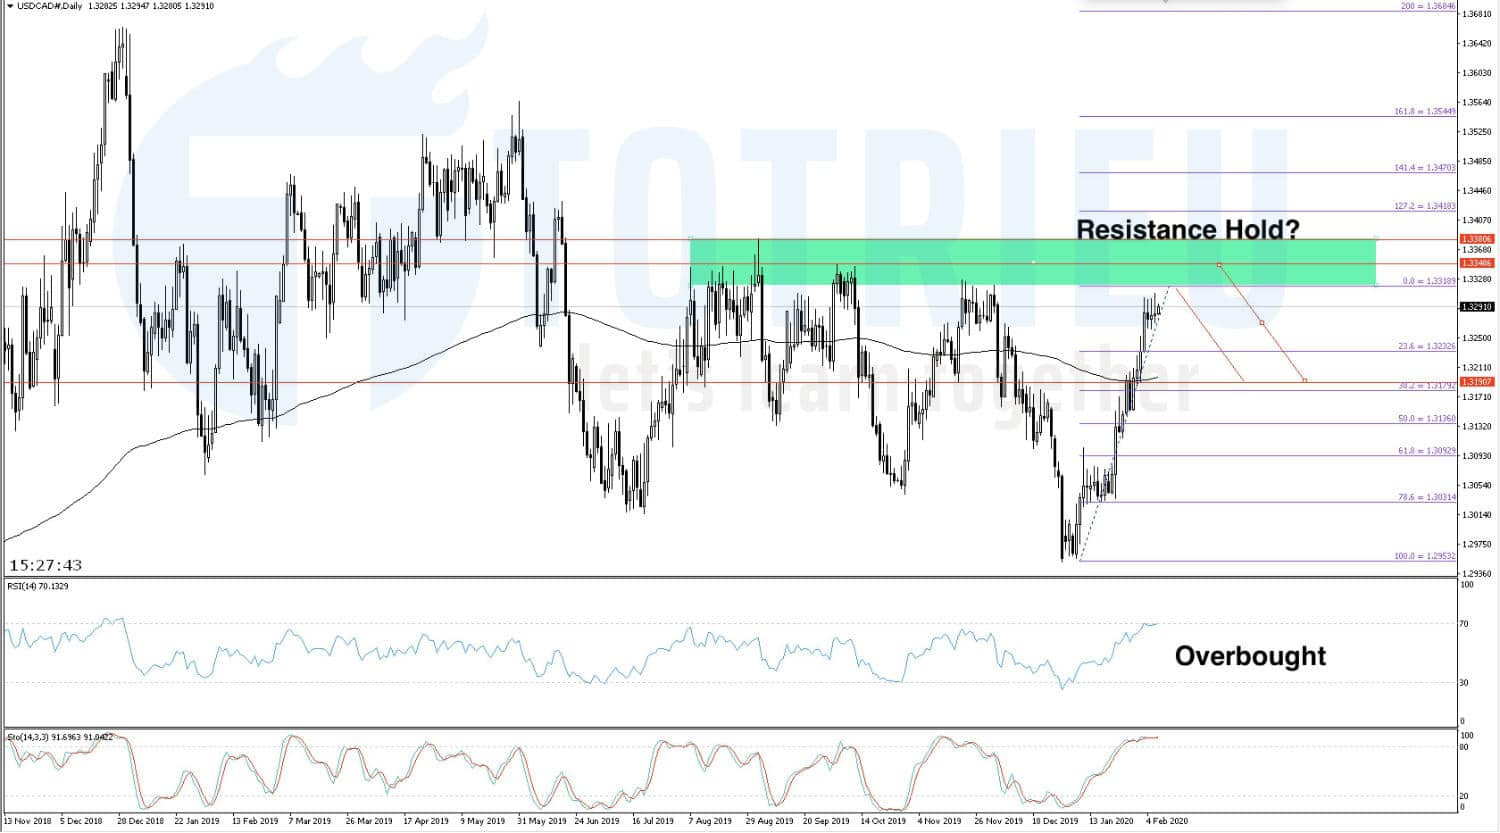 USD/CAD ngày 07/02/2020: Resistance Hold?